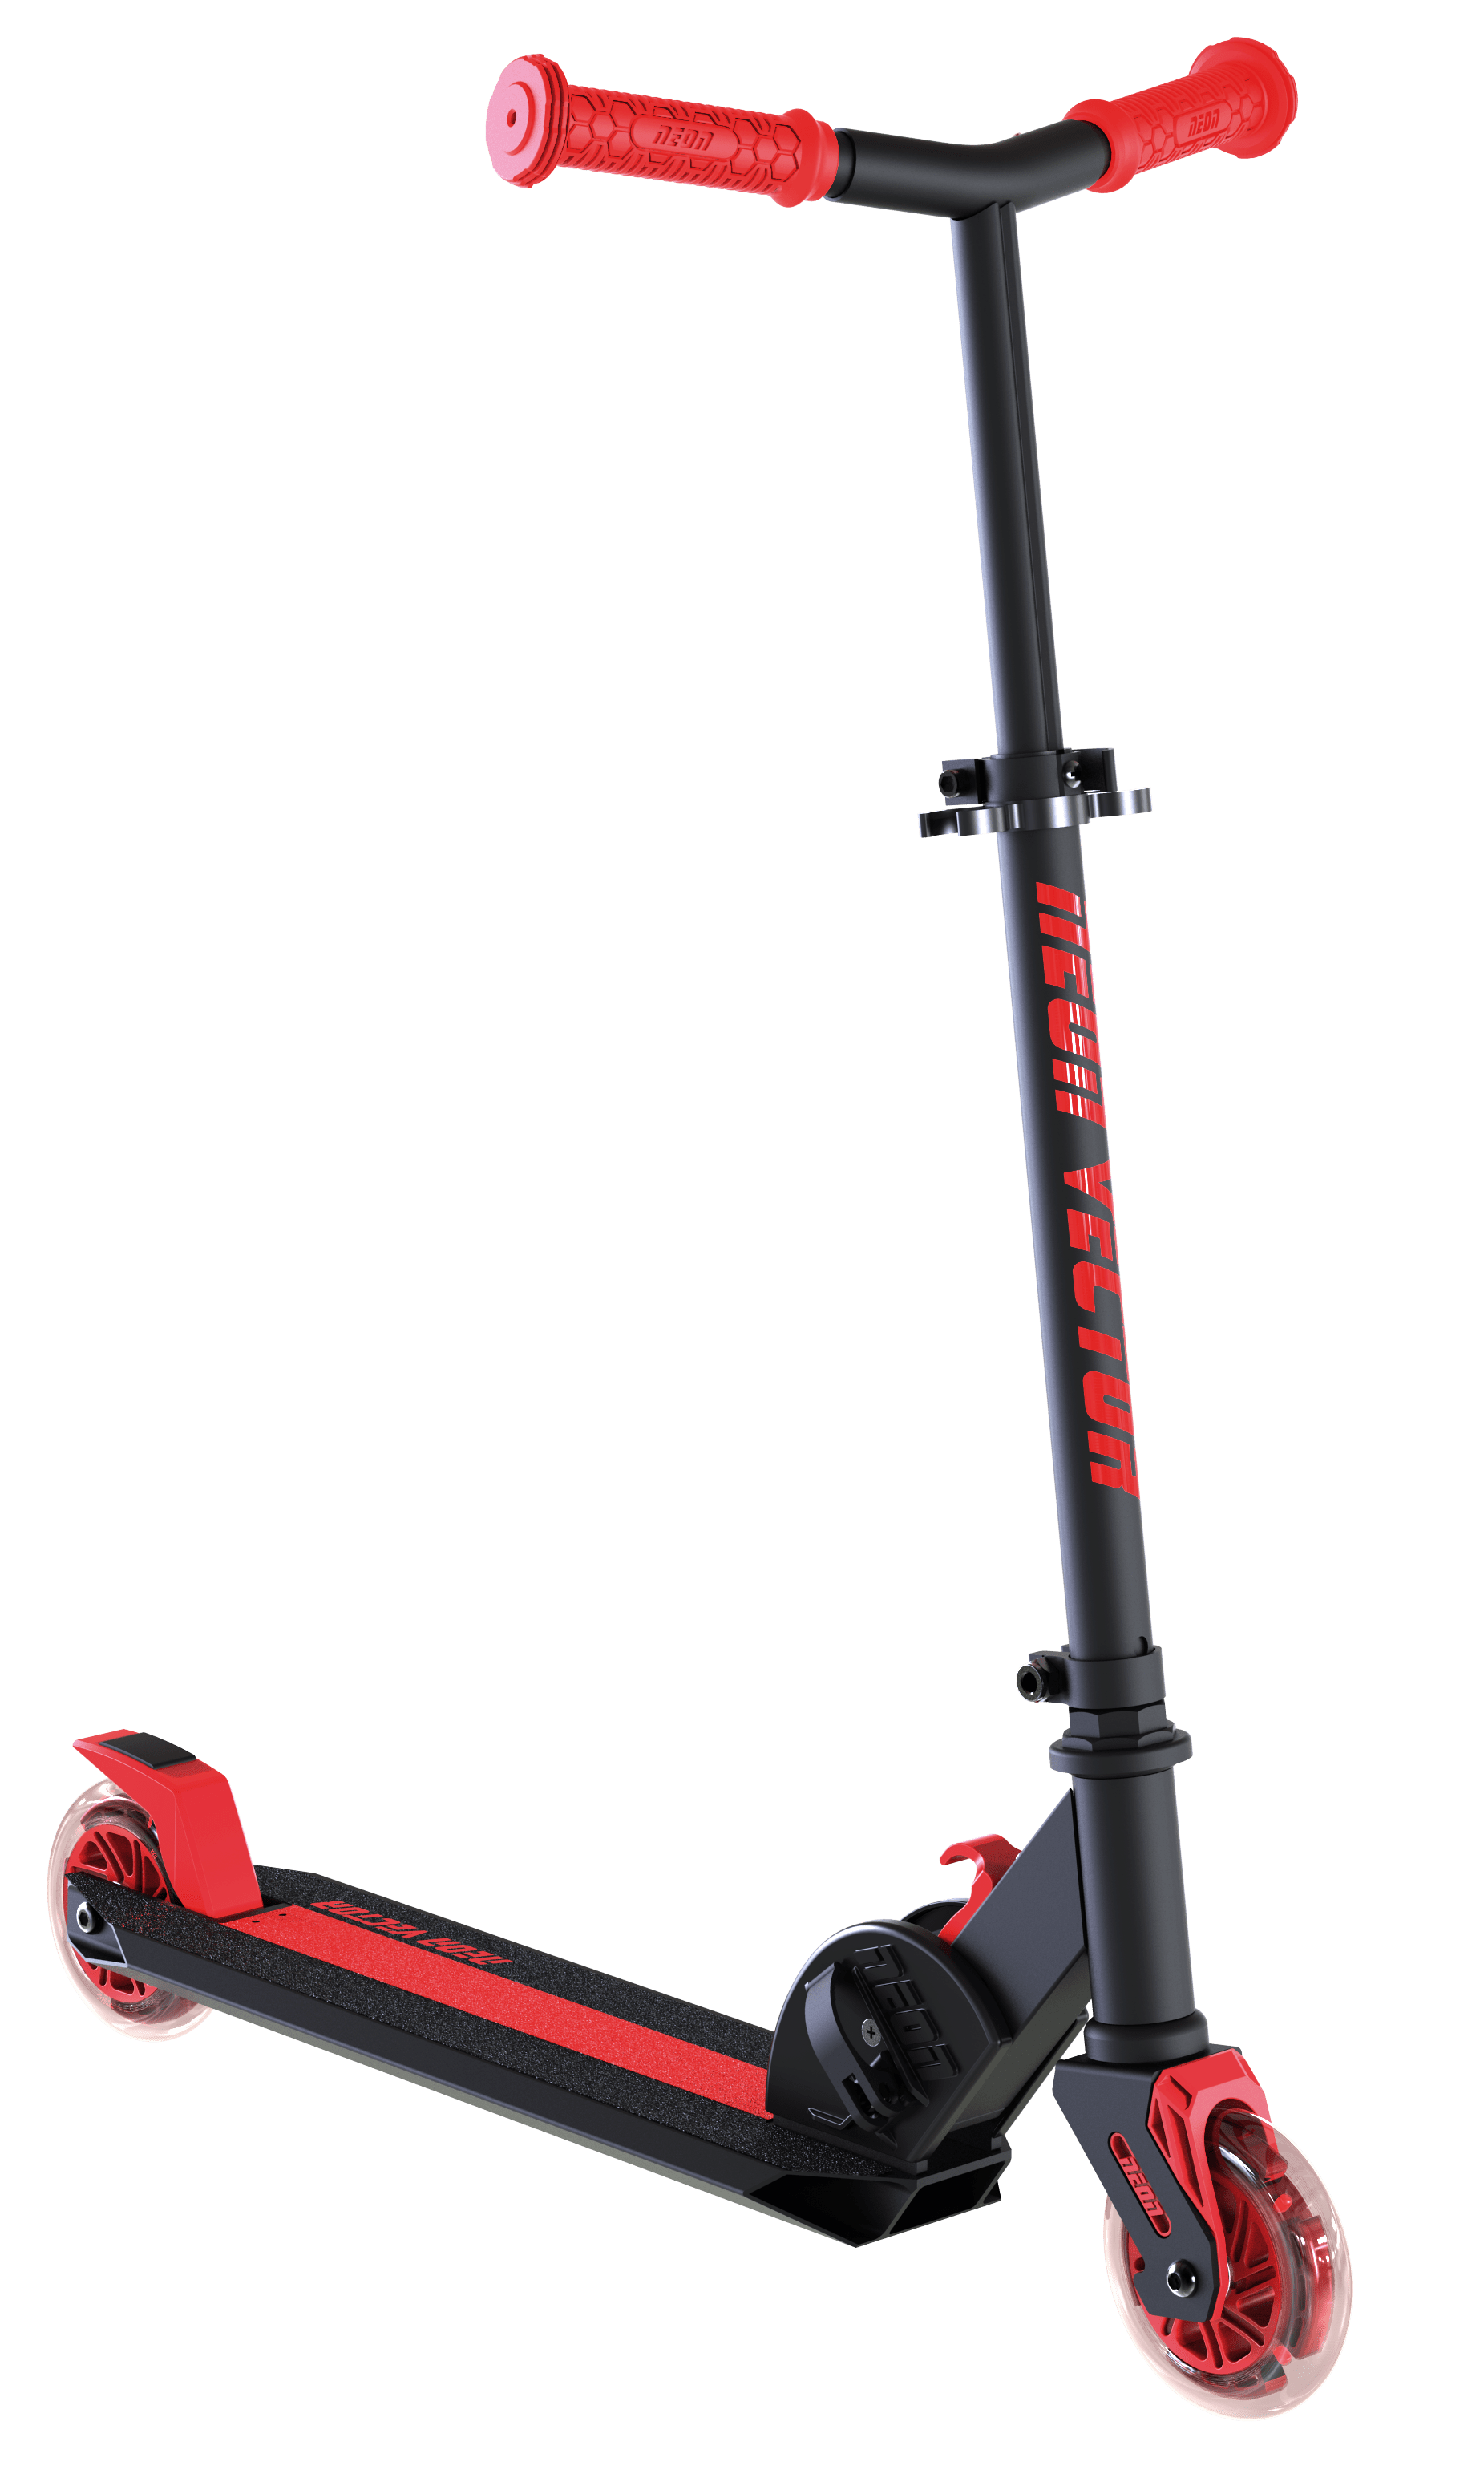 Neon Vybe Kick Scooter Vector Red for Kids, foldable with LED light-up wheels by YVOLUTION